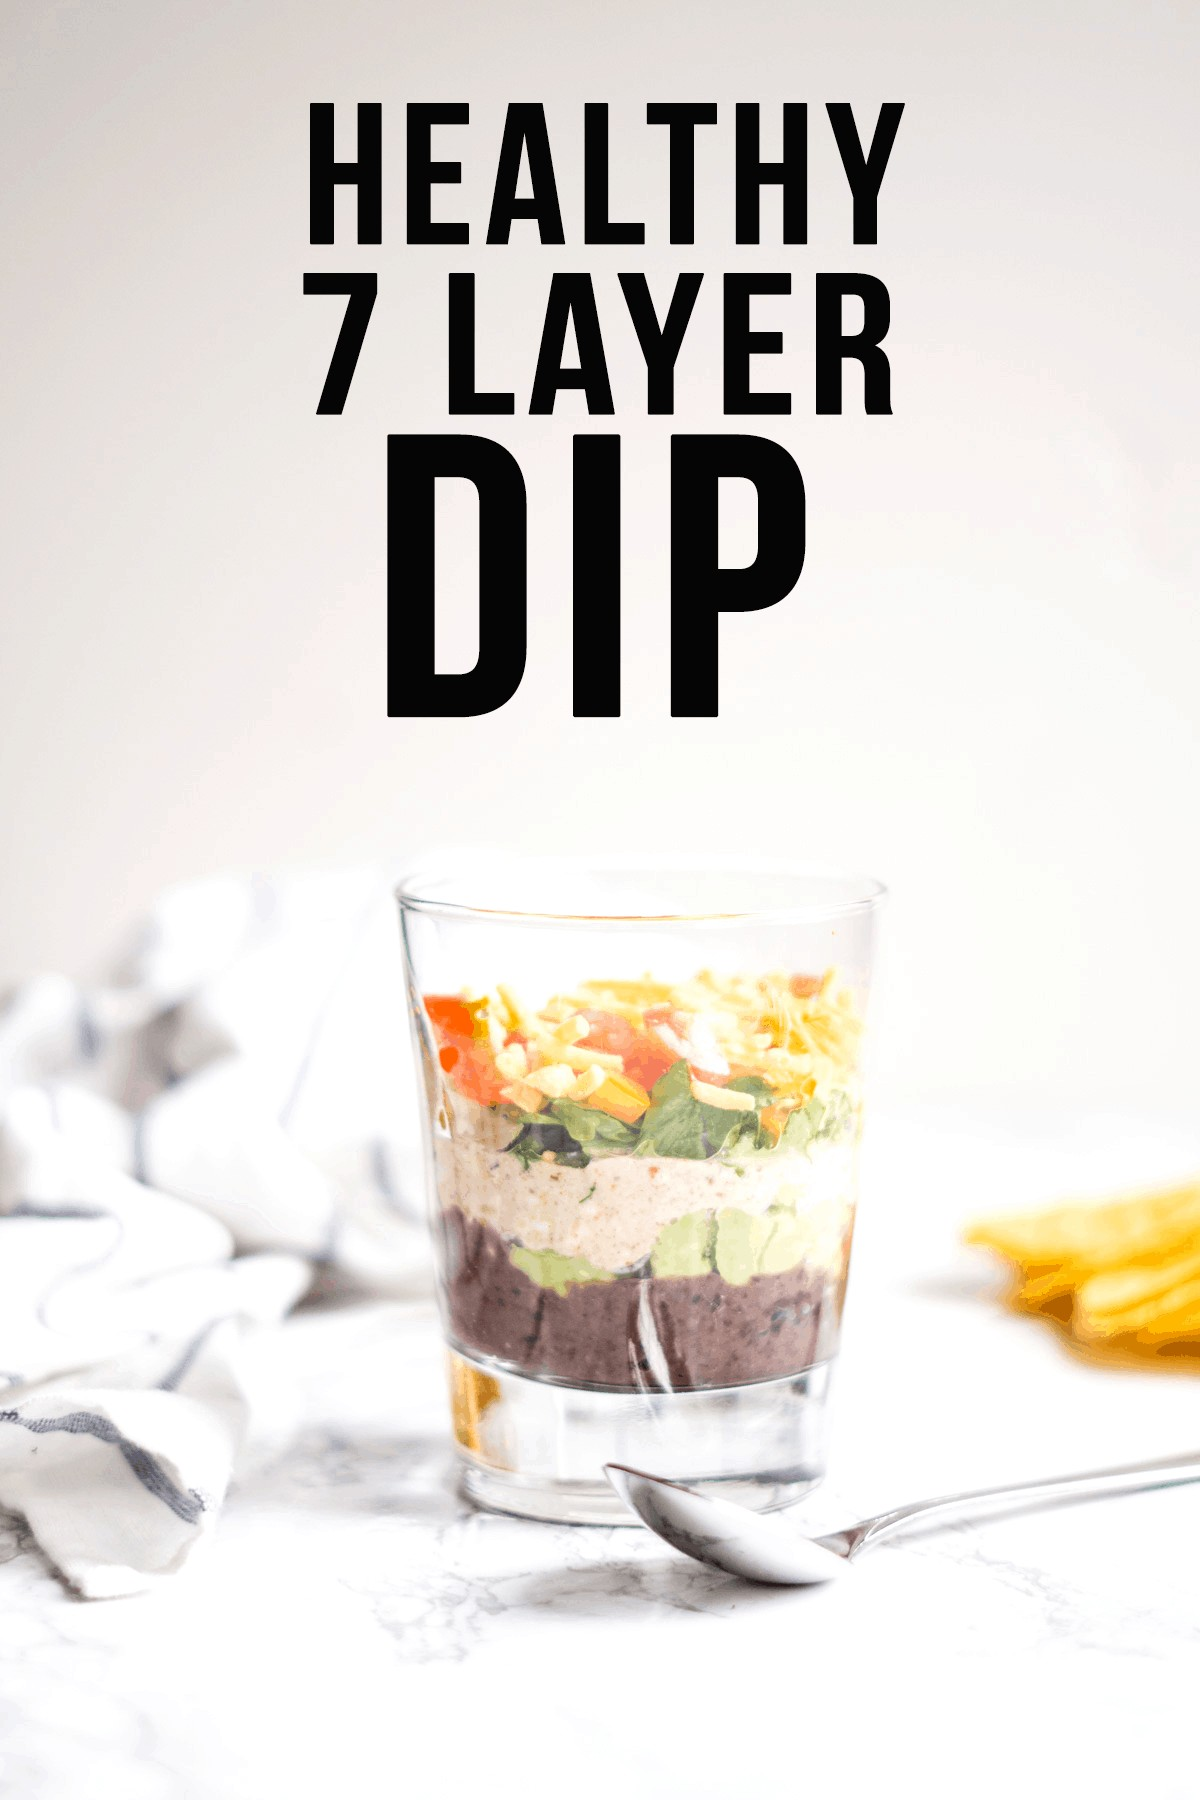 7 Layer Dip (healthy, easy, crowd favourite or eat for dinner_)